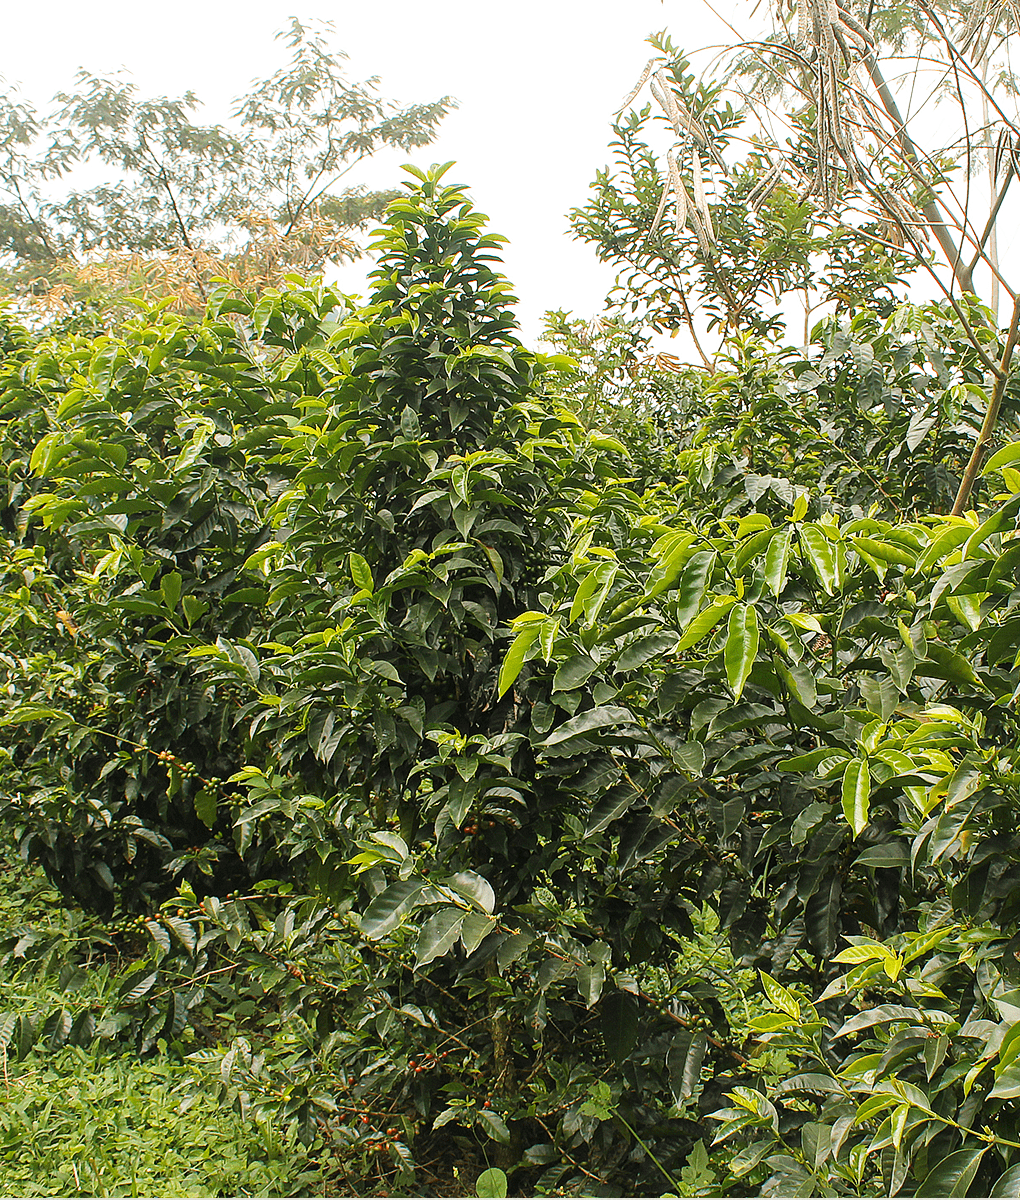 Finca Inmaculada Laurina, Naturally Low-Caffeine Colombia